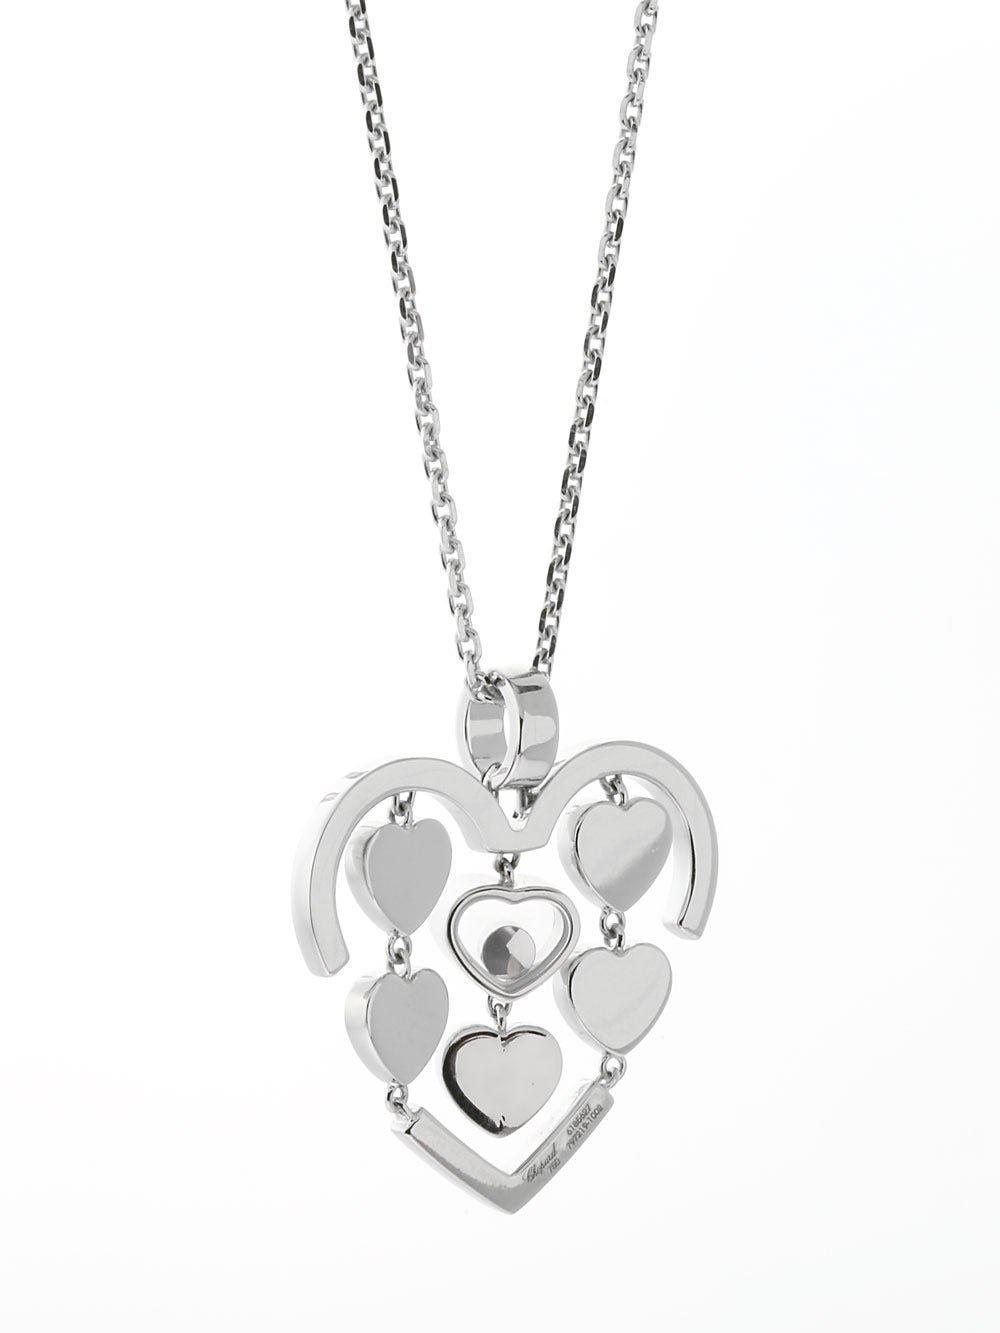 A magnificent authentic Chopard necklace featuring a multitude of delicate hearts enhanced with an iconic Chopard happy diamond (.05ct) set in 18k white gold.